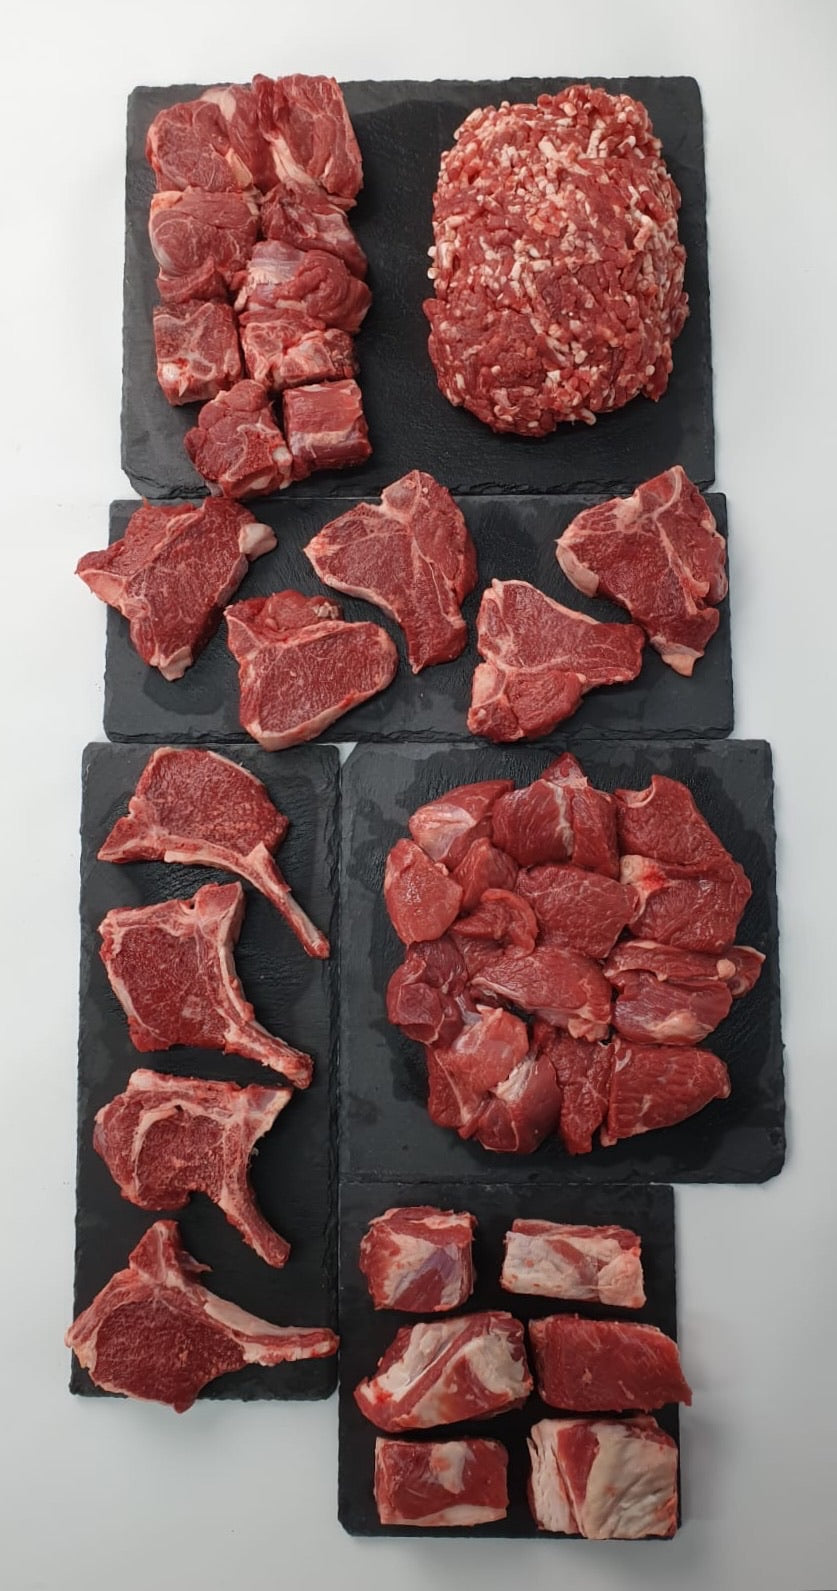 Halal Organic Lamb Half - Cut into Pieces (9-11kg gross)